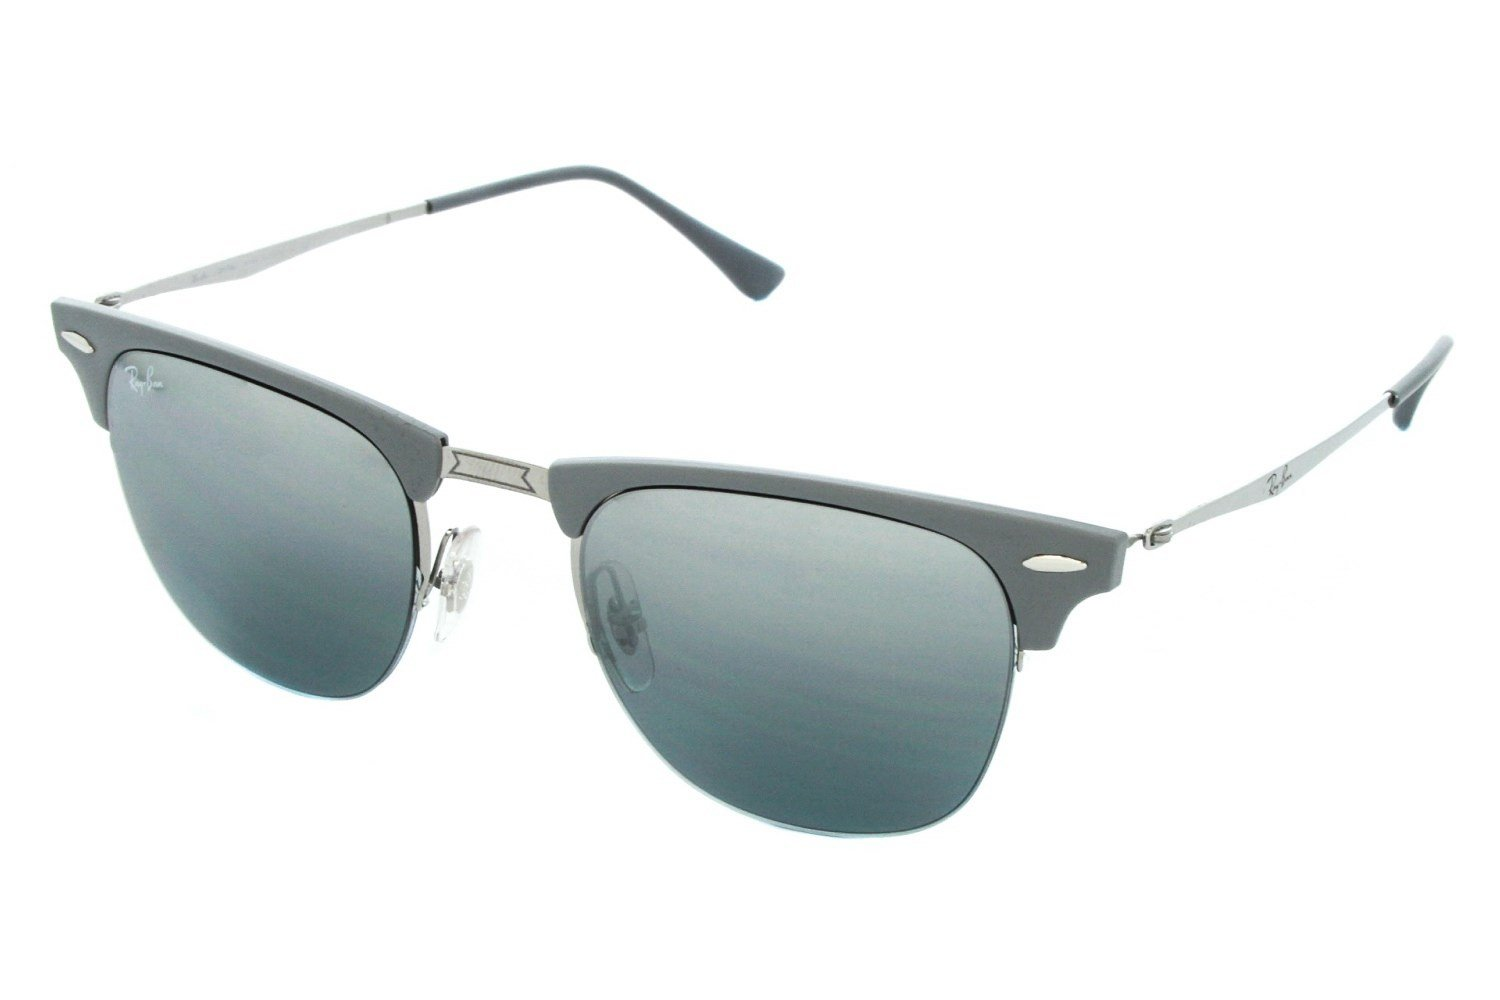 buy aviator sunglasses online  sunglasses & contact